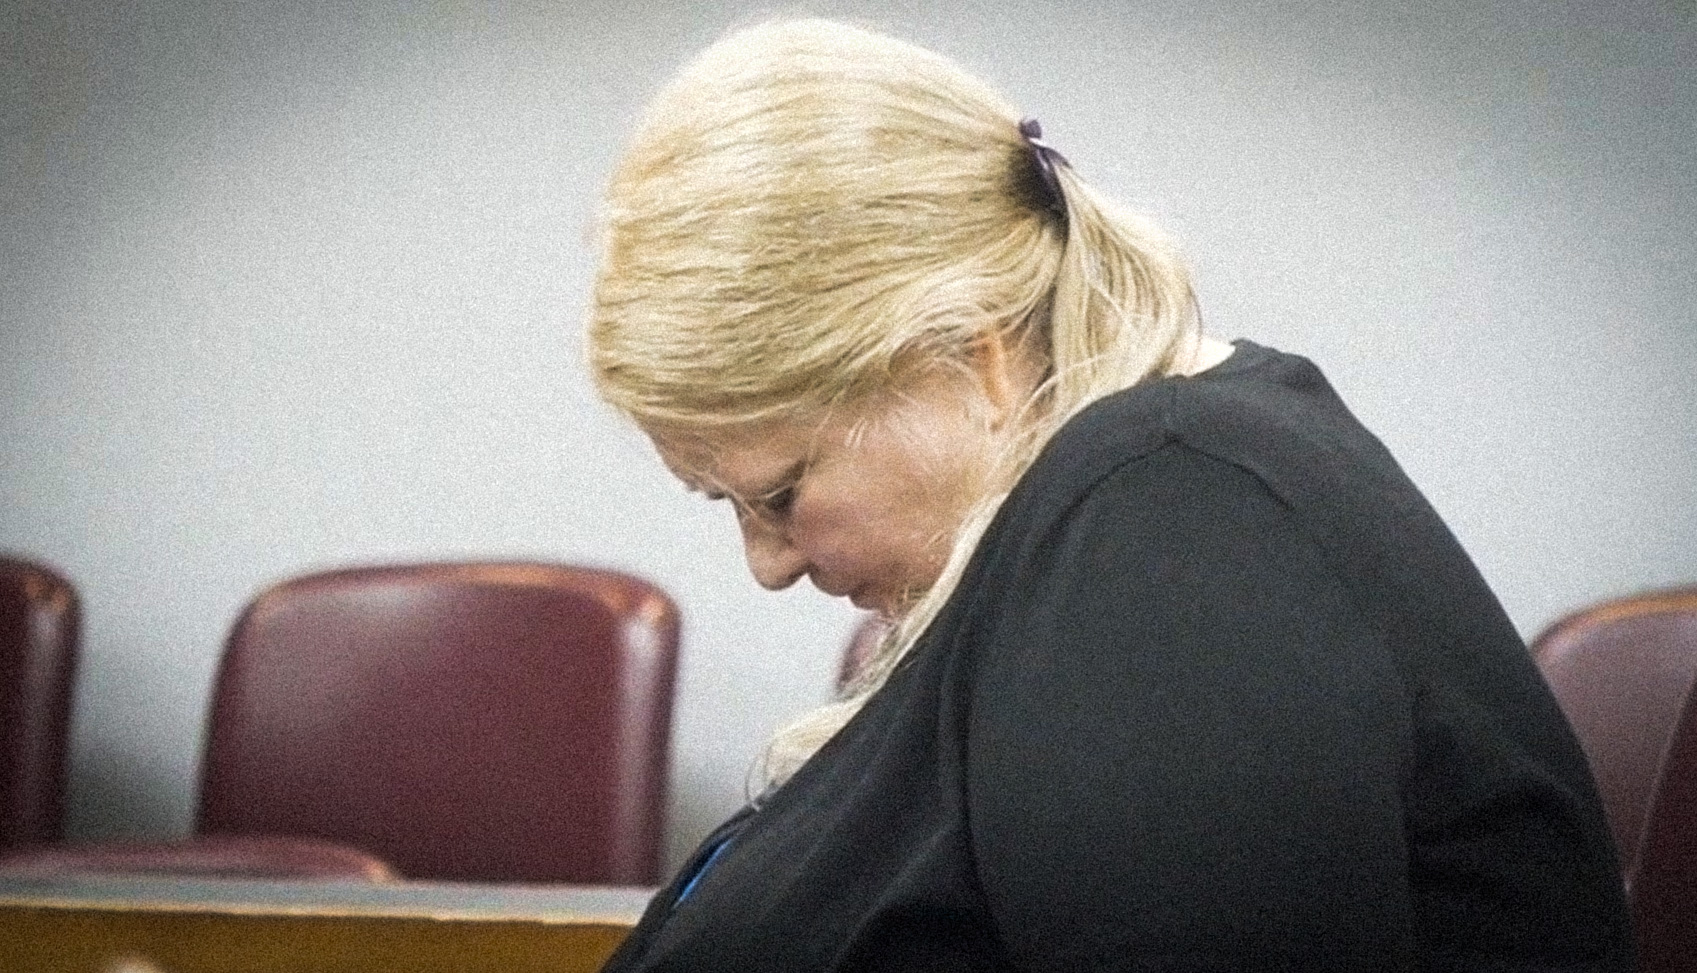 Cheryn Smilen, 56, pleaded guilty to animal cruelty after she starved cats to death